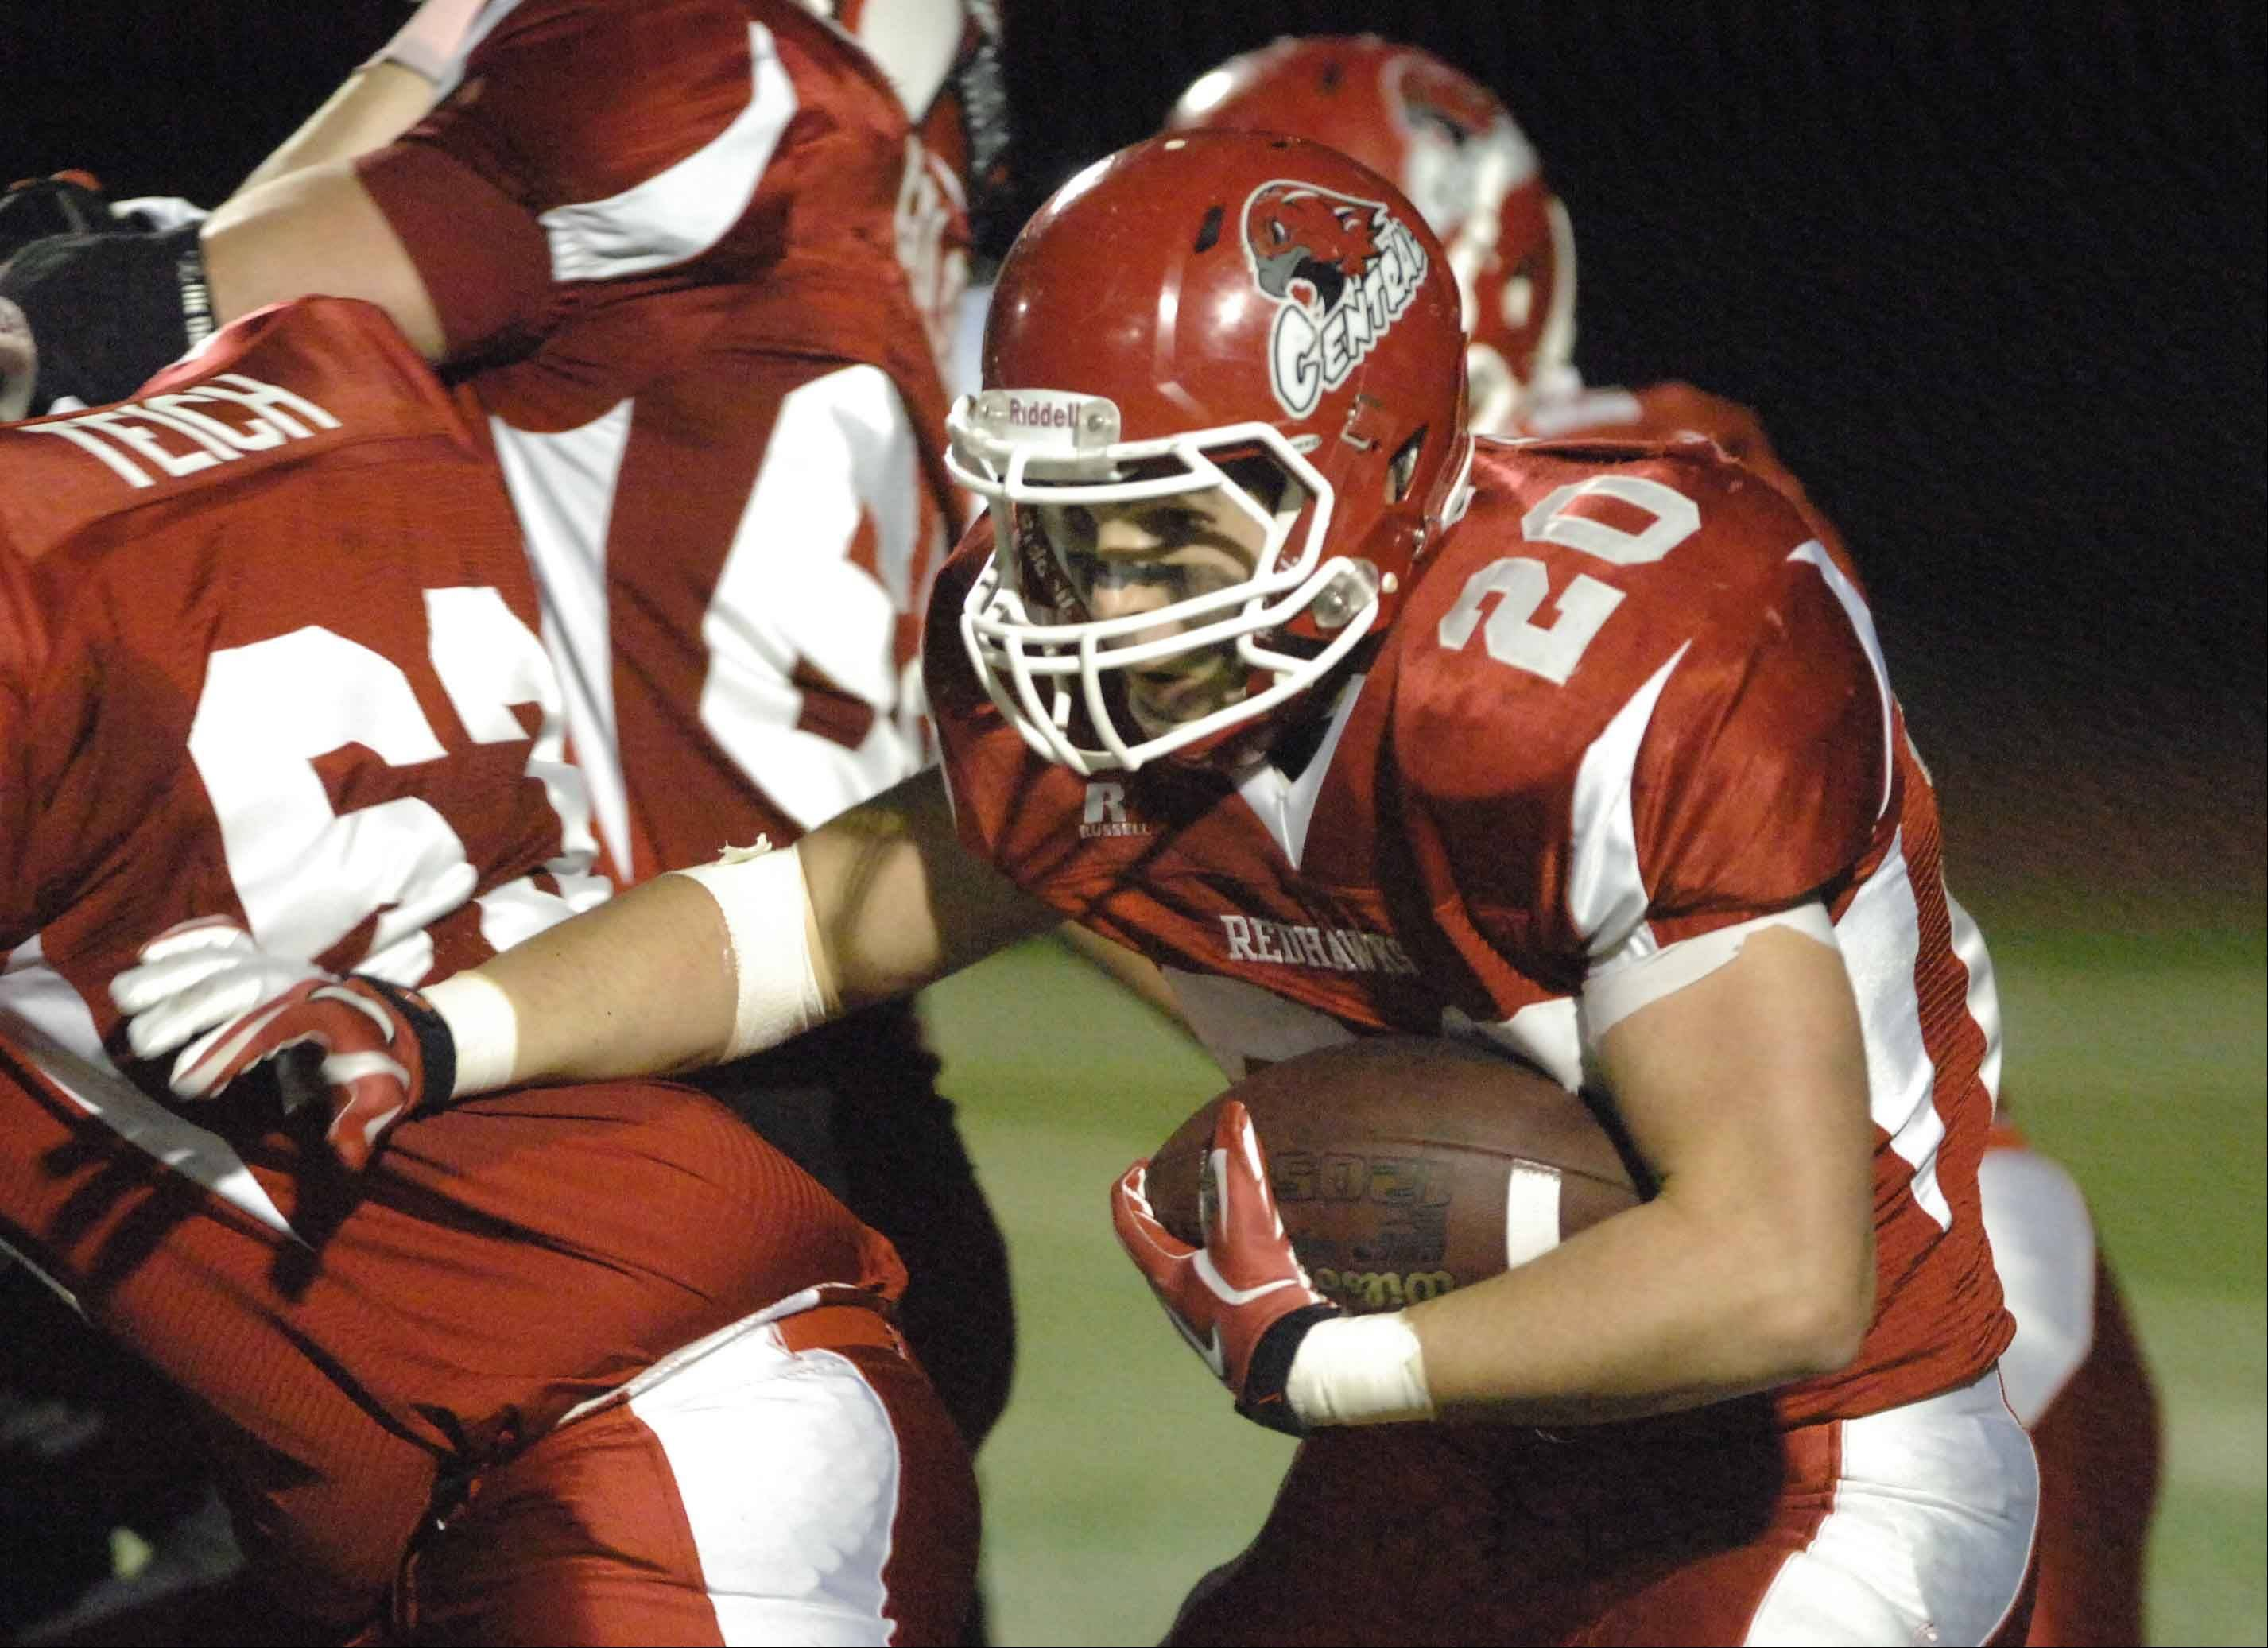 Week 6- Matt Randolph of Naperville Central moves the ball.